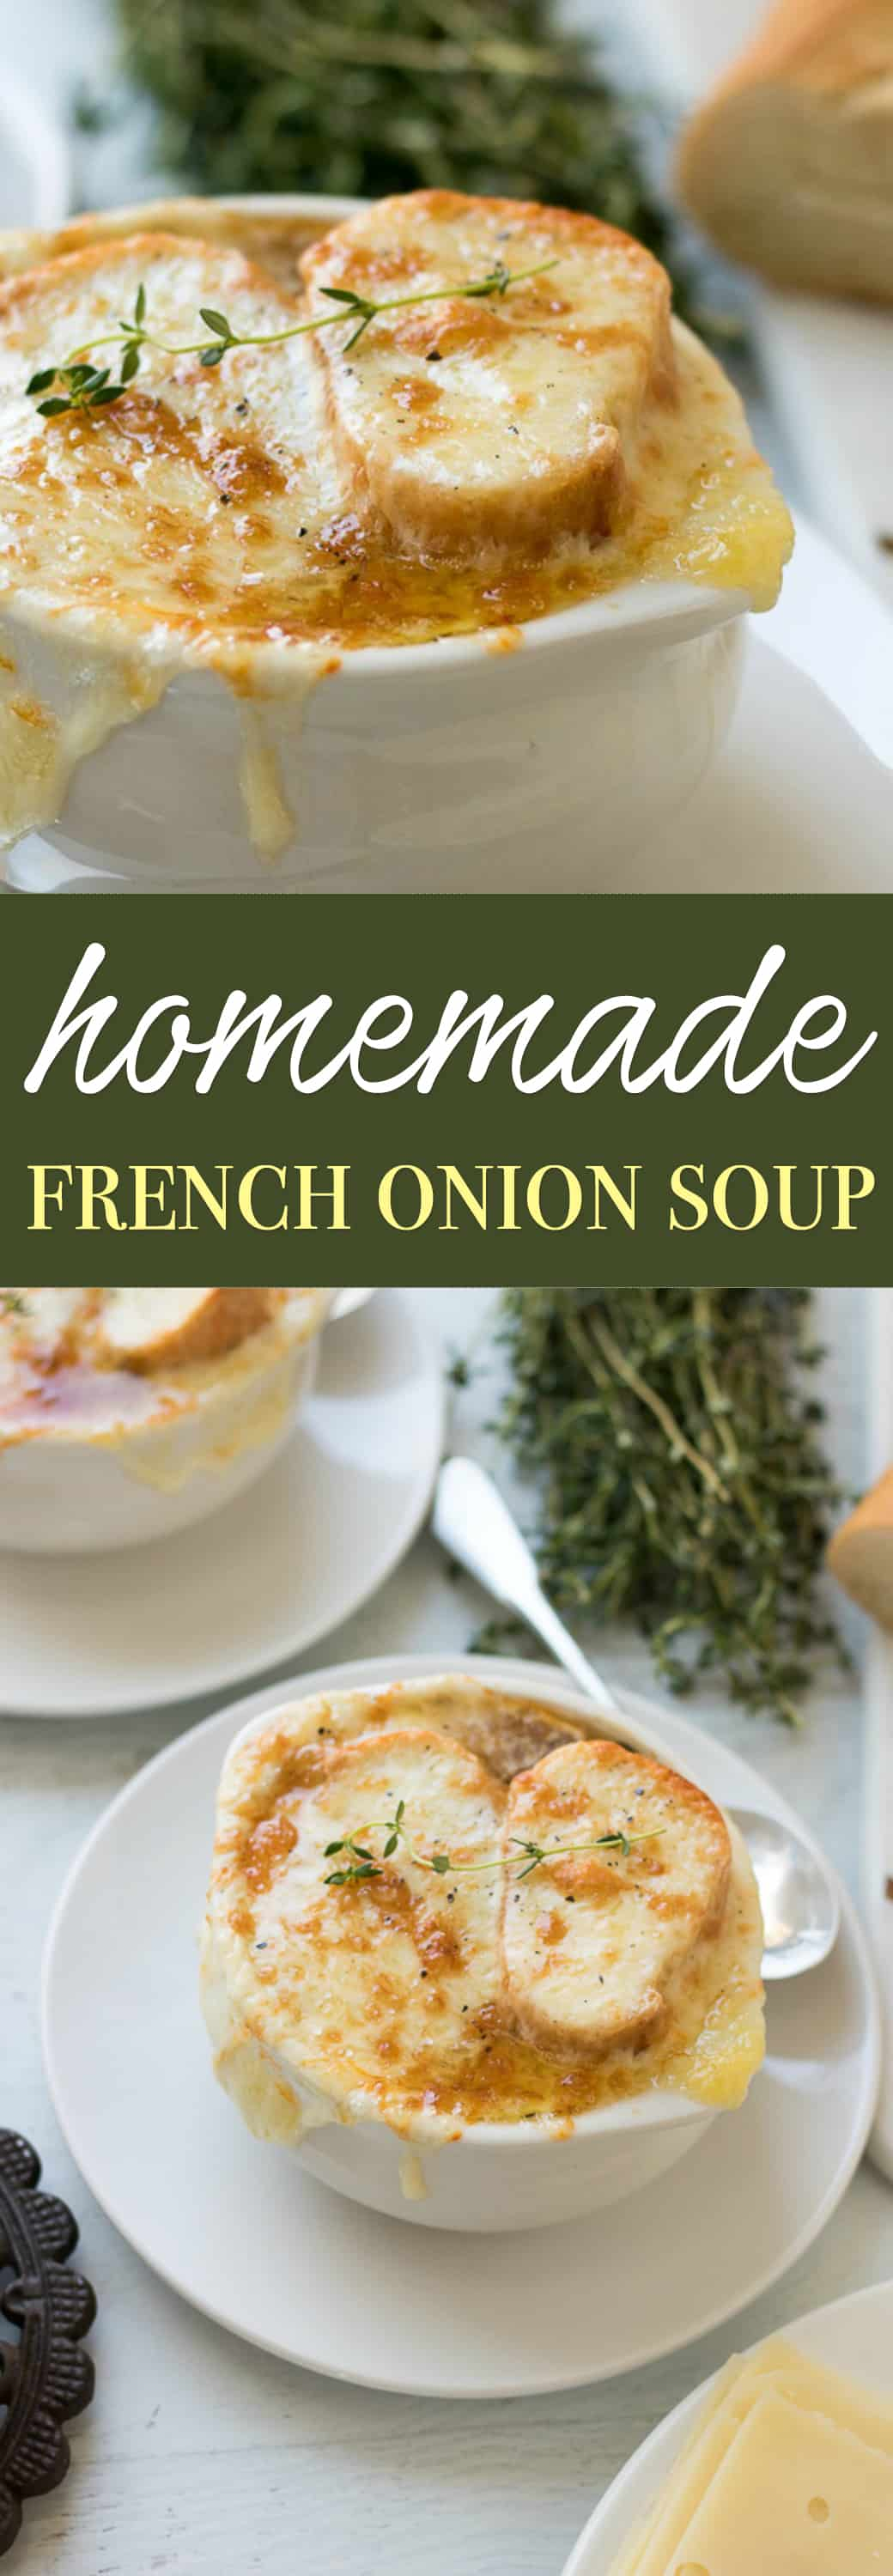 Caramelized onions in a reduction of white wine and sherry with herbs of thyme and bay leaves make this French Onion Soup delicious. The topping of French baguette bread wrapped in 3 cheeses then melted to a golden, crispy crust, make it ultra-satisfying.